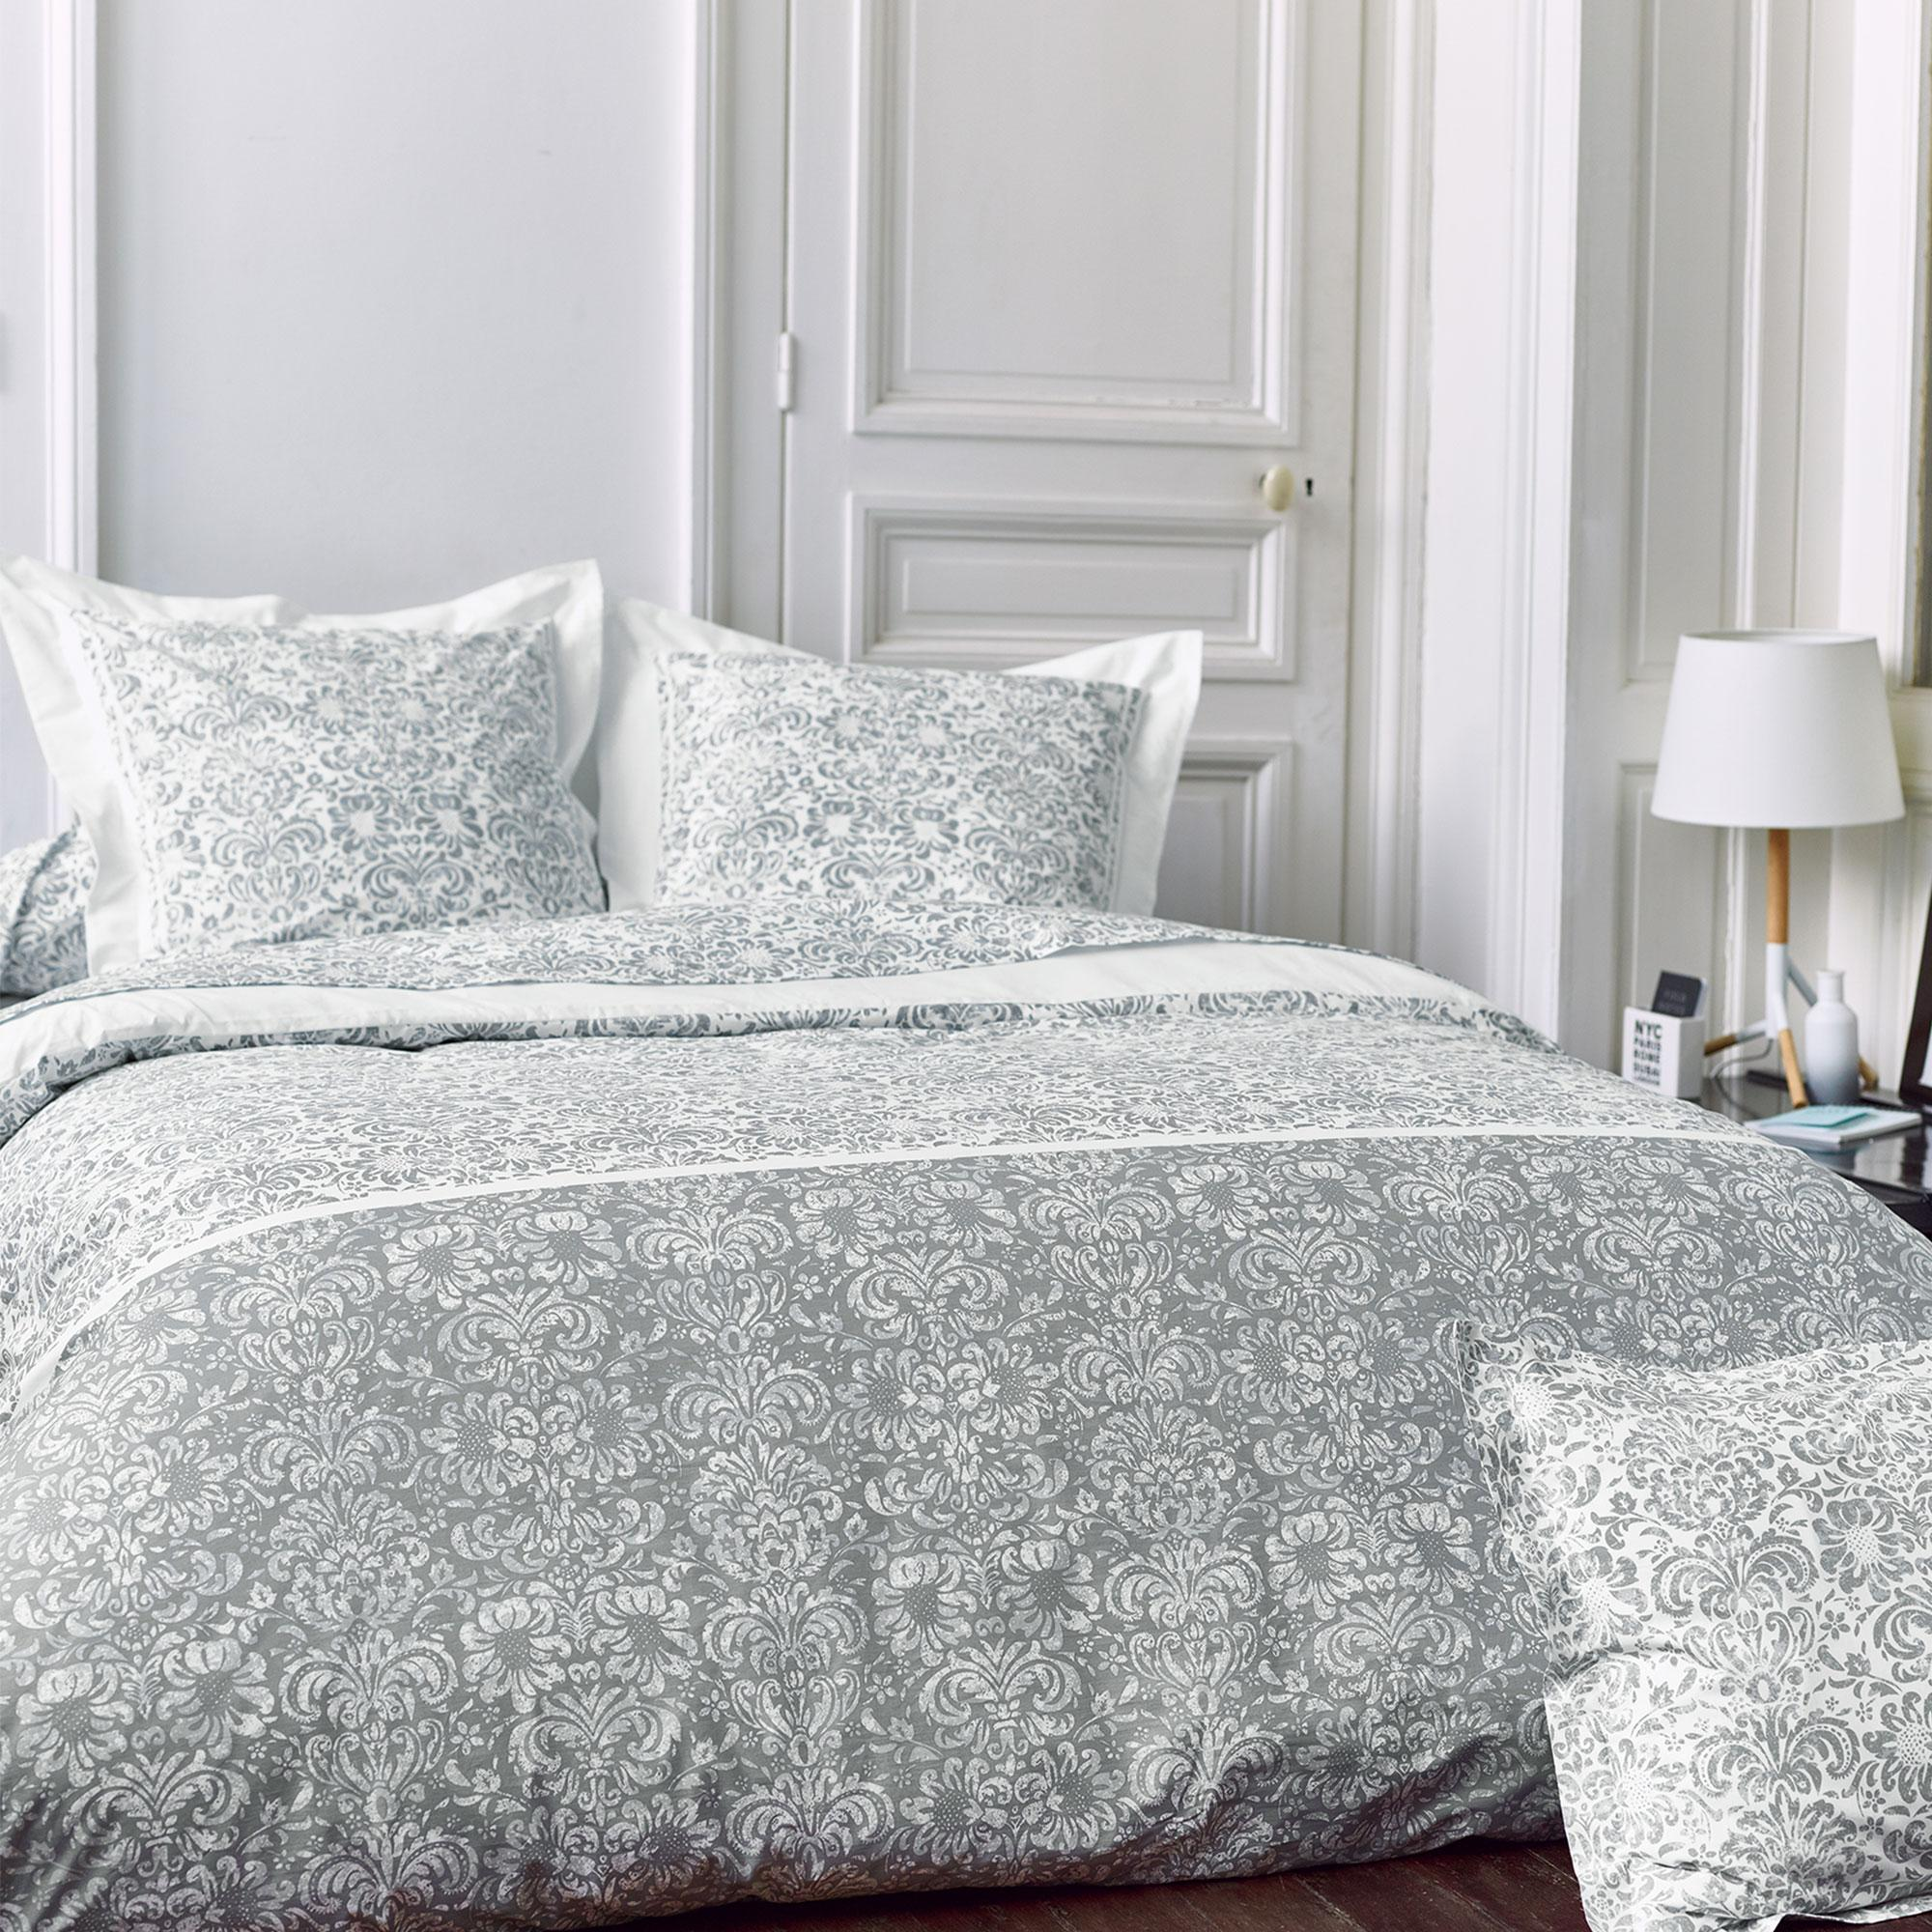 parure de lit 300x240 cm percale pur coton amboise gris 3 pi ces linnea linge de maison et. Black Bedroom Furniture Sets. Home Design Ideas